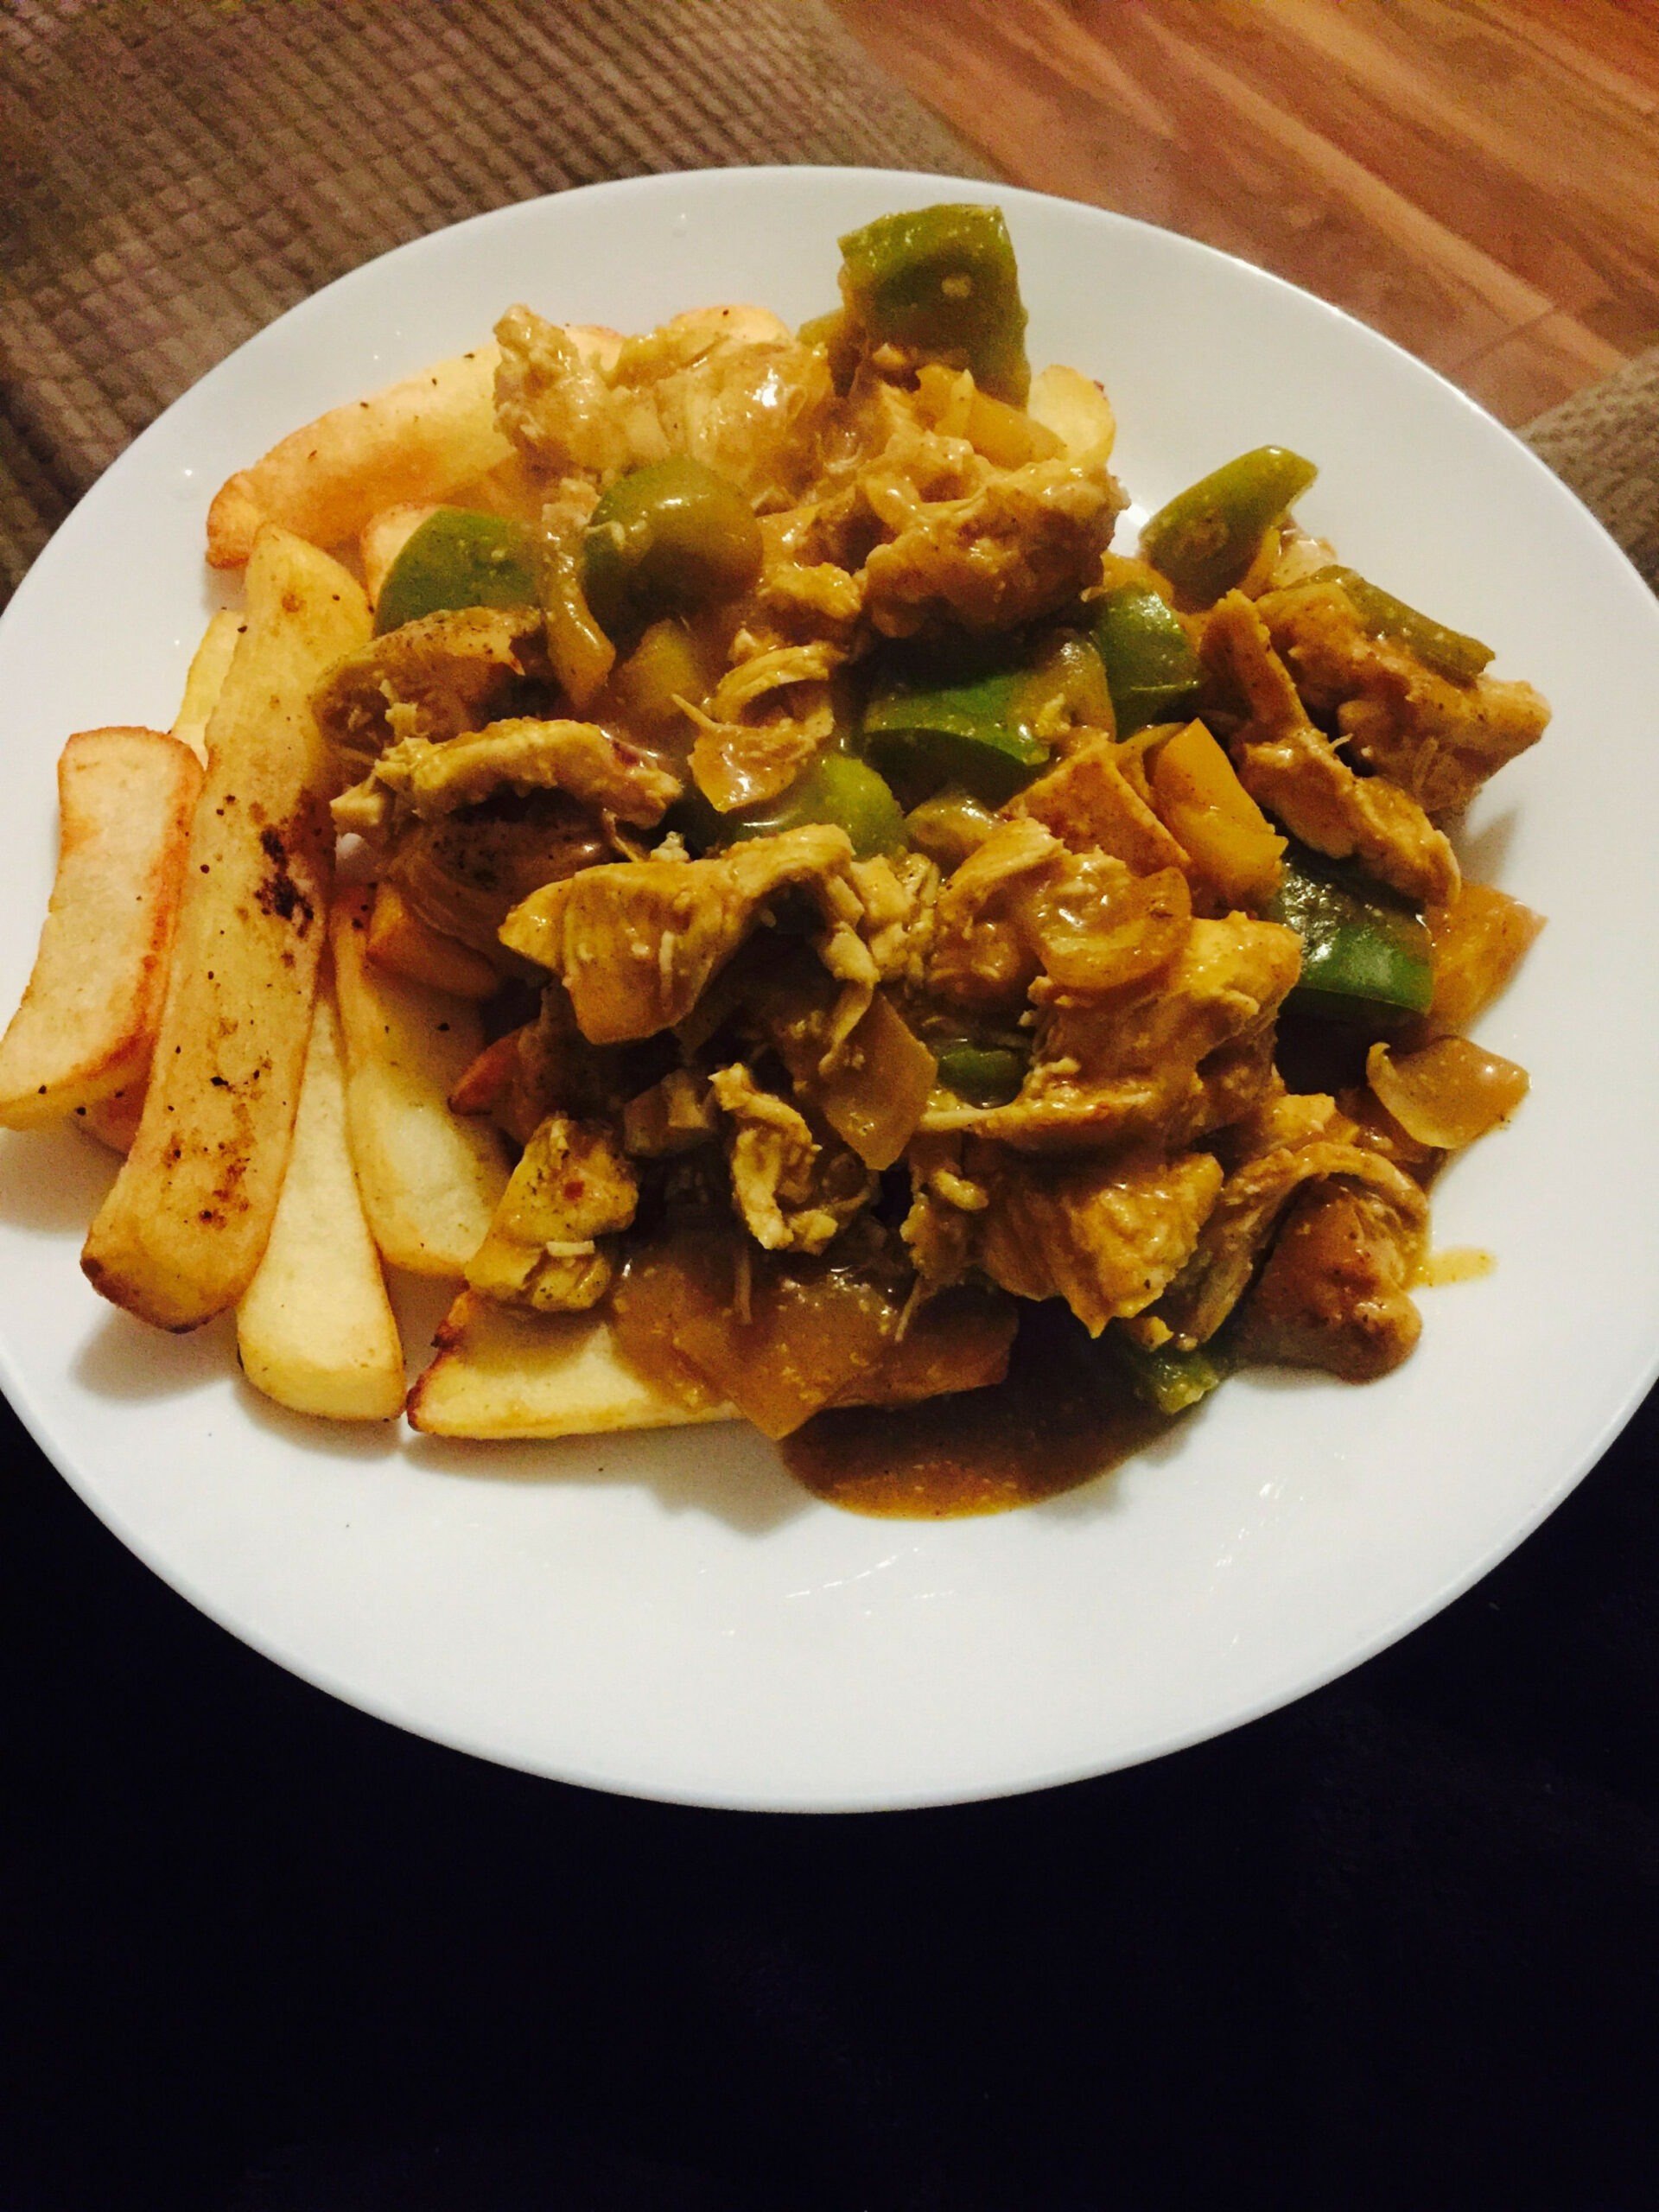 Omg Delicious love mayflower curry and unislim chips. Save ..